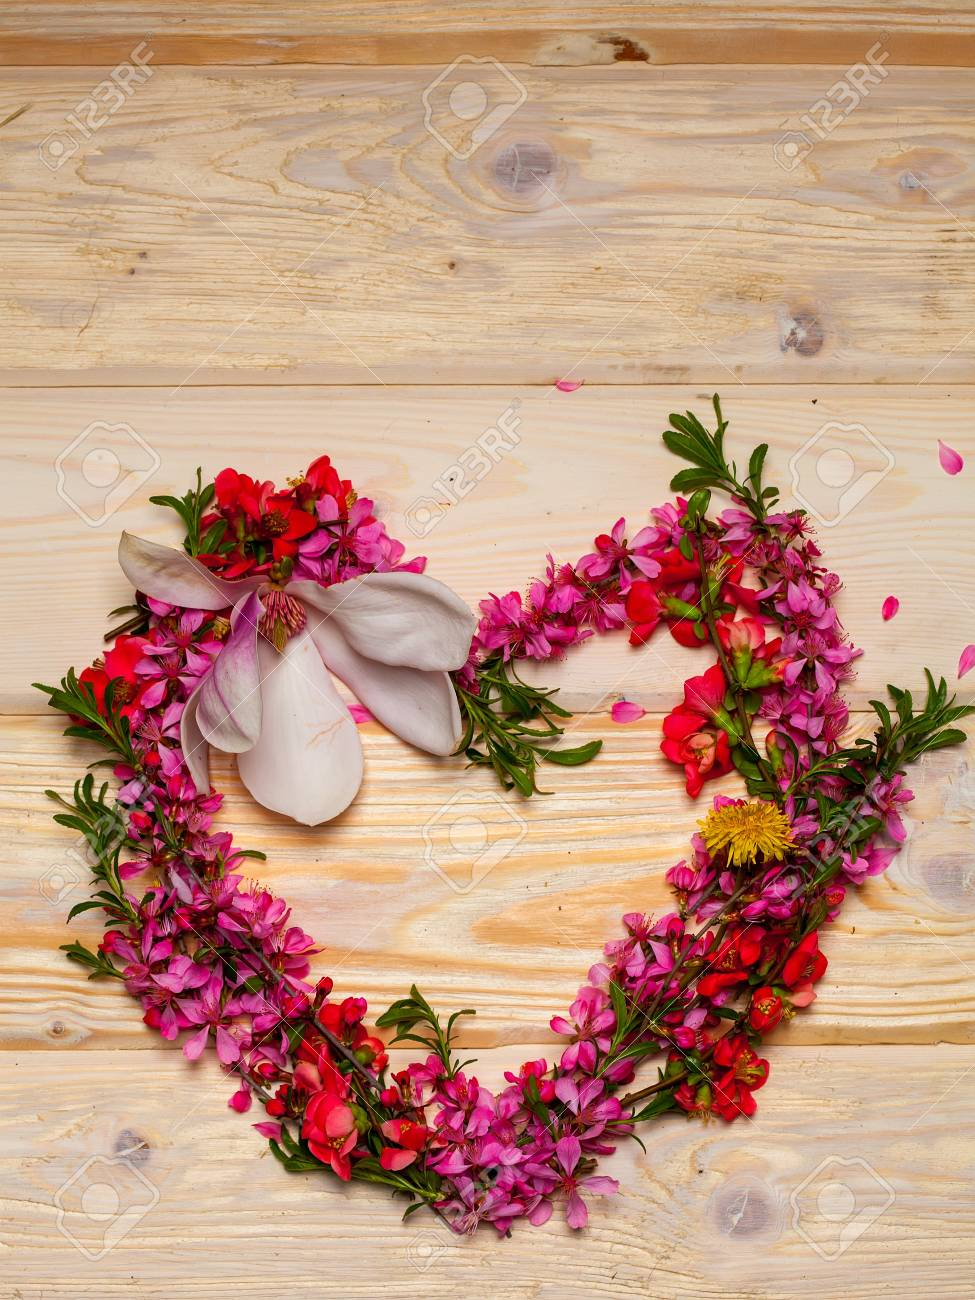 Beautiful flowers in heart shape on wooden background stock photo beautiful flowers in heart shape on wooden background stock photo 58481370 izmirmasajfo